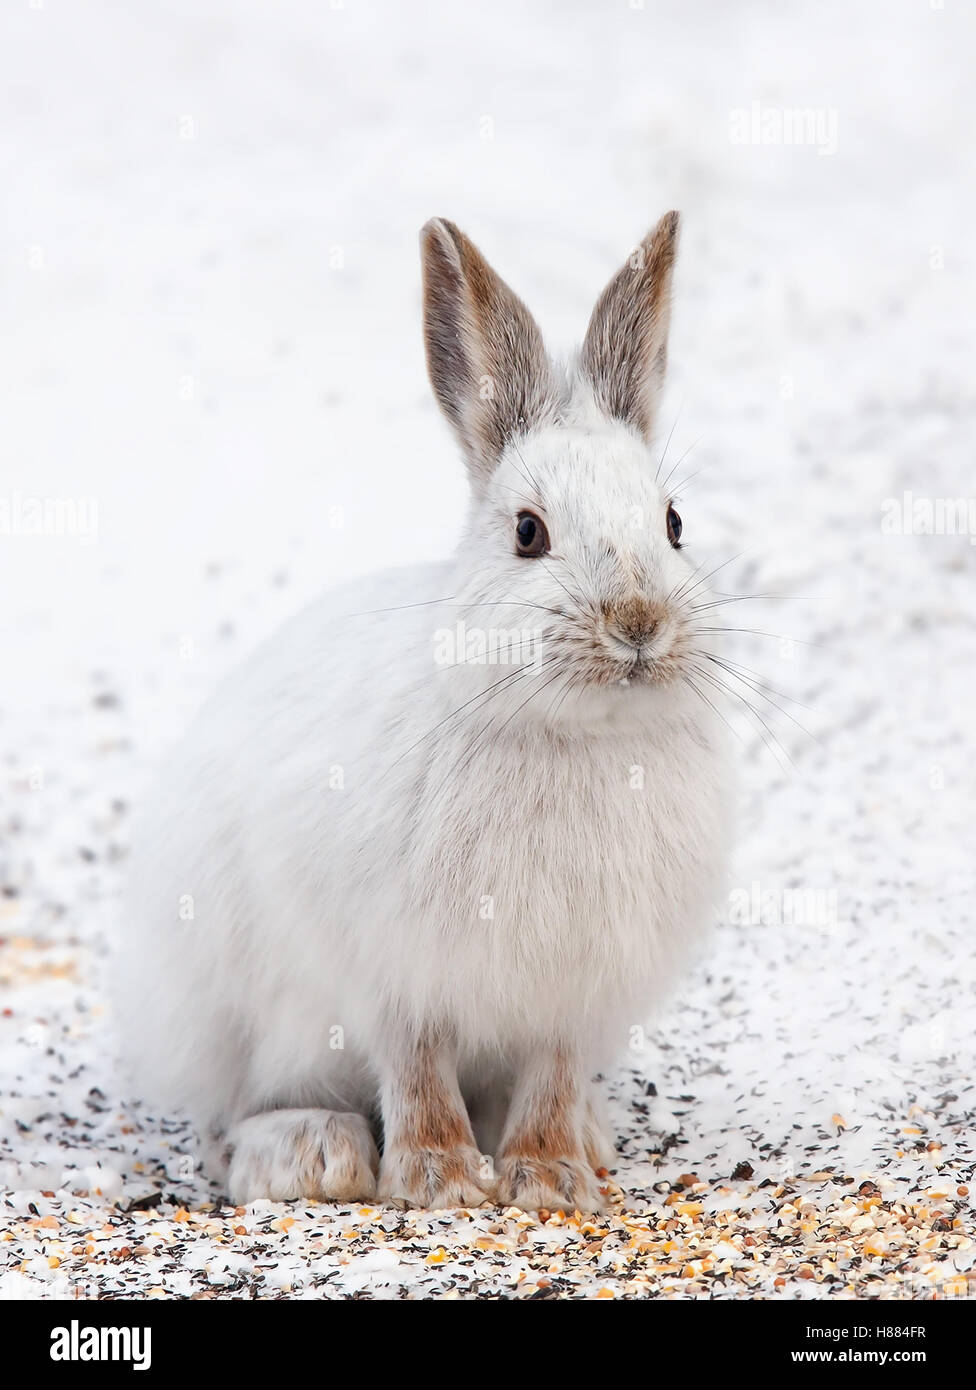 Snowshoe hare or Varying hare (Lepus americanus) in winter in Canada - Stock Image